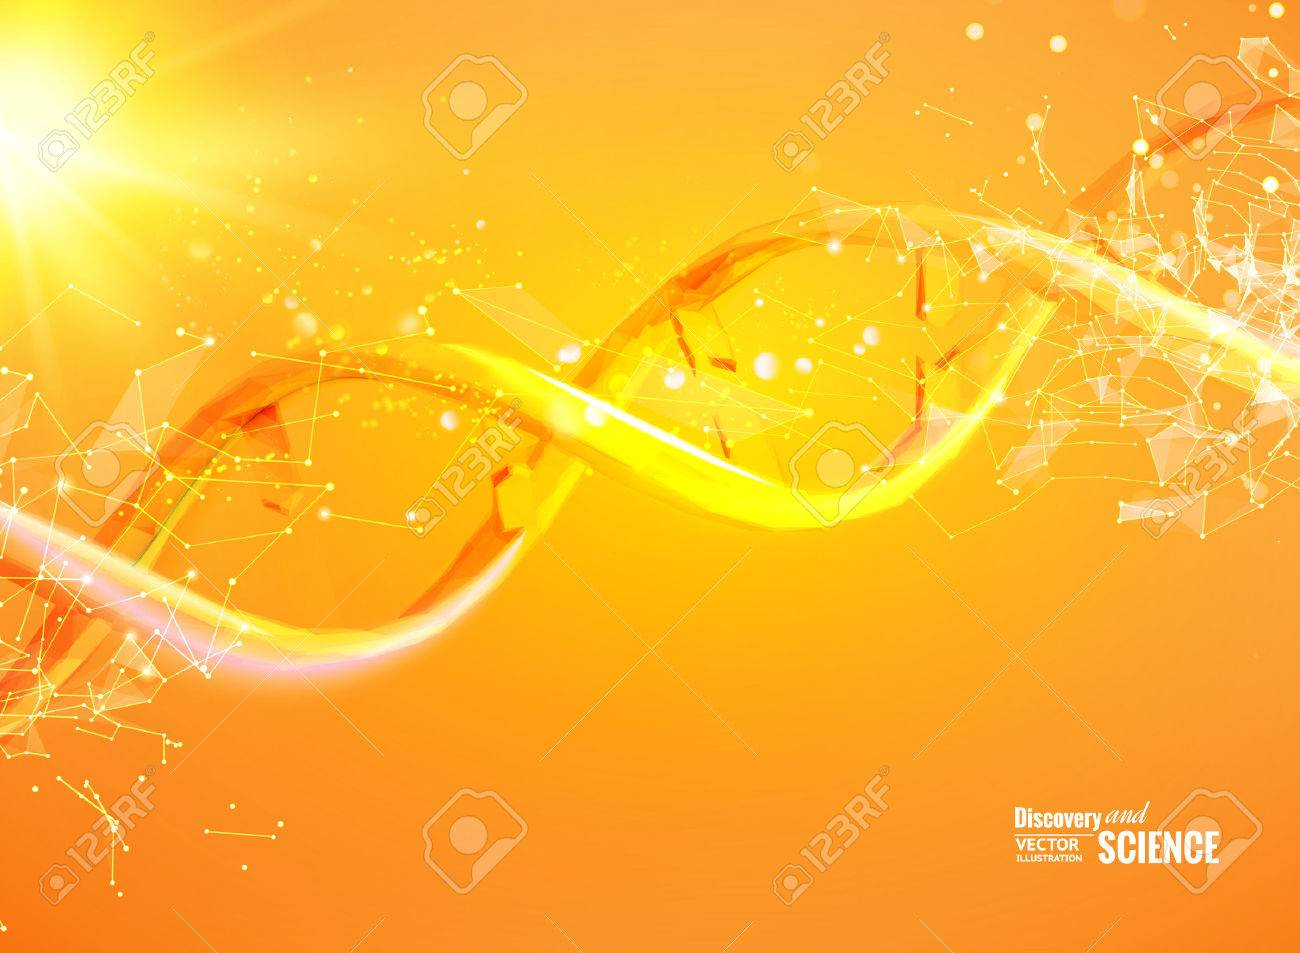 Science template for your card, orange wallpaper or banner with a DNA molecules of polygons. Wire-frame mesh polygonal element. Glow light futuristic background. Vector illustration. - 64465233